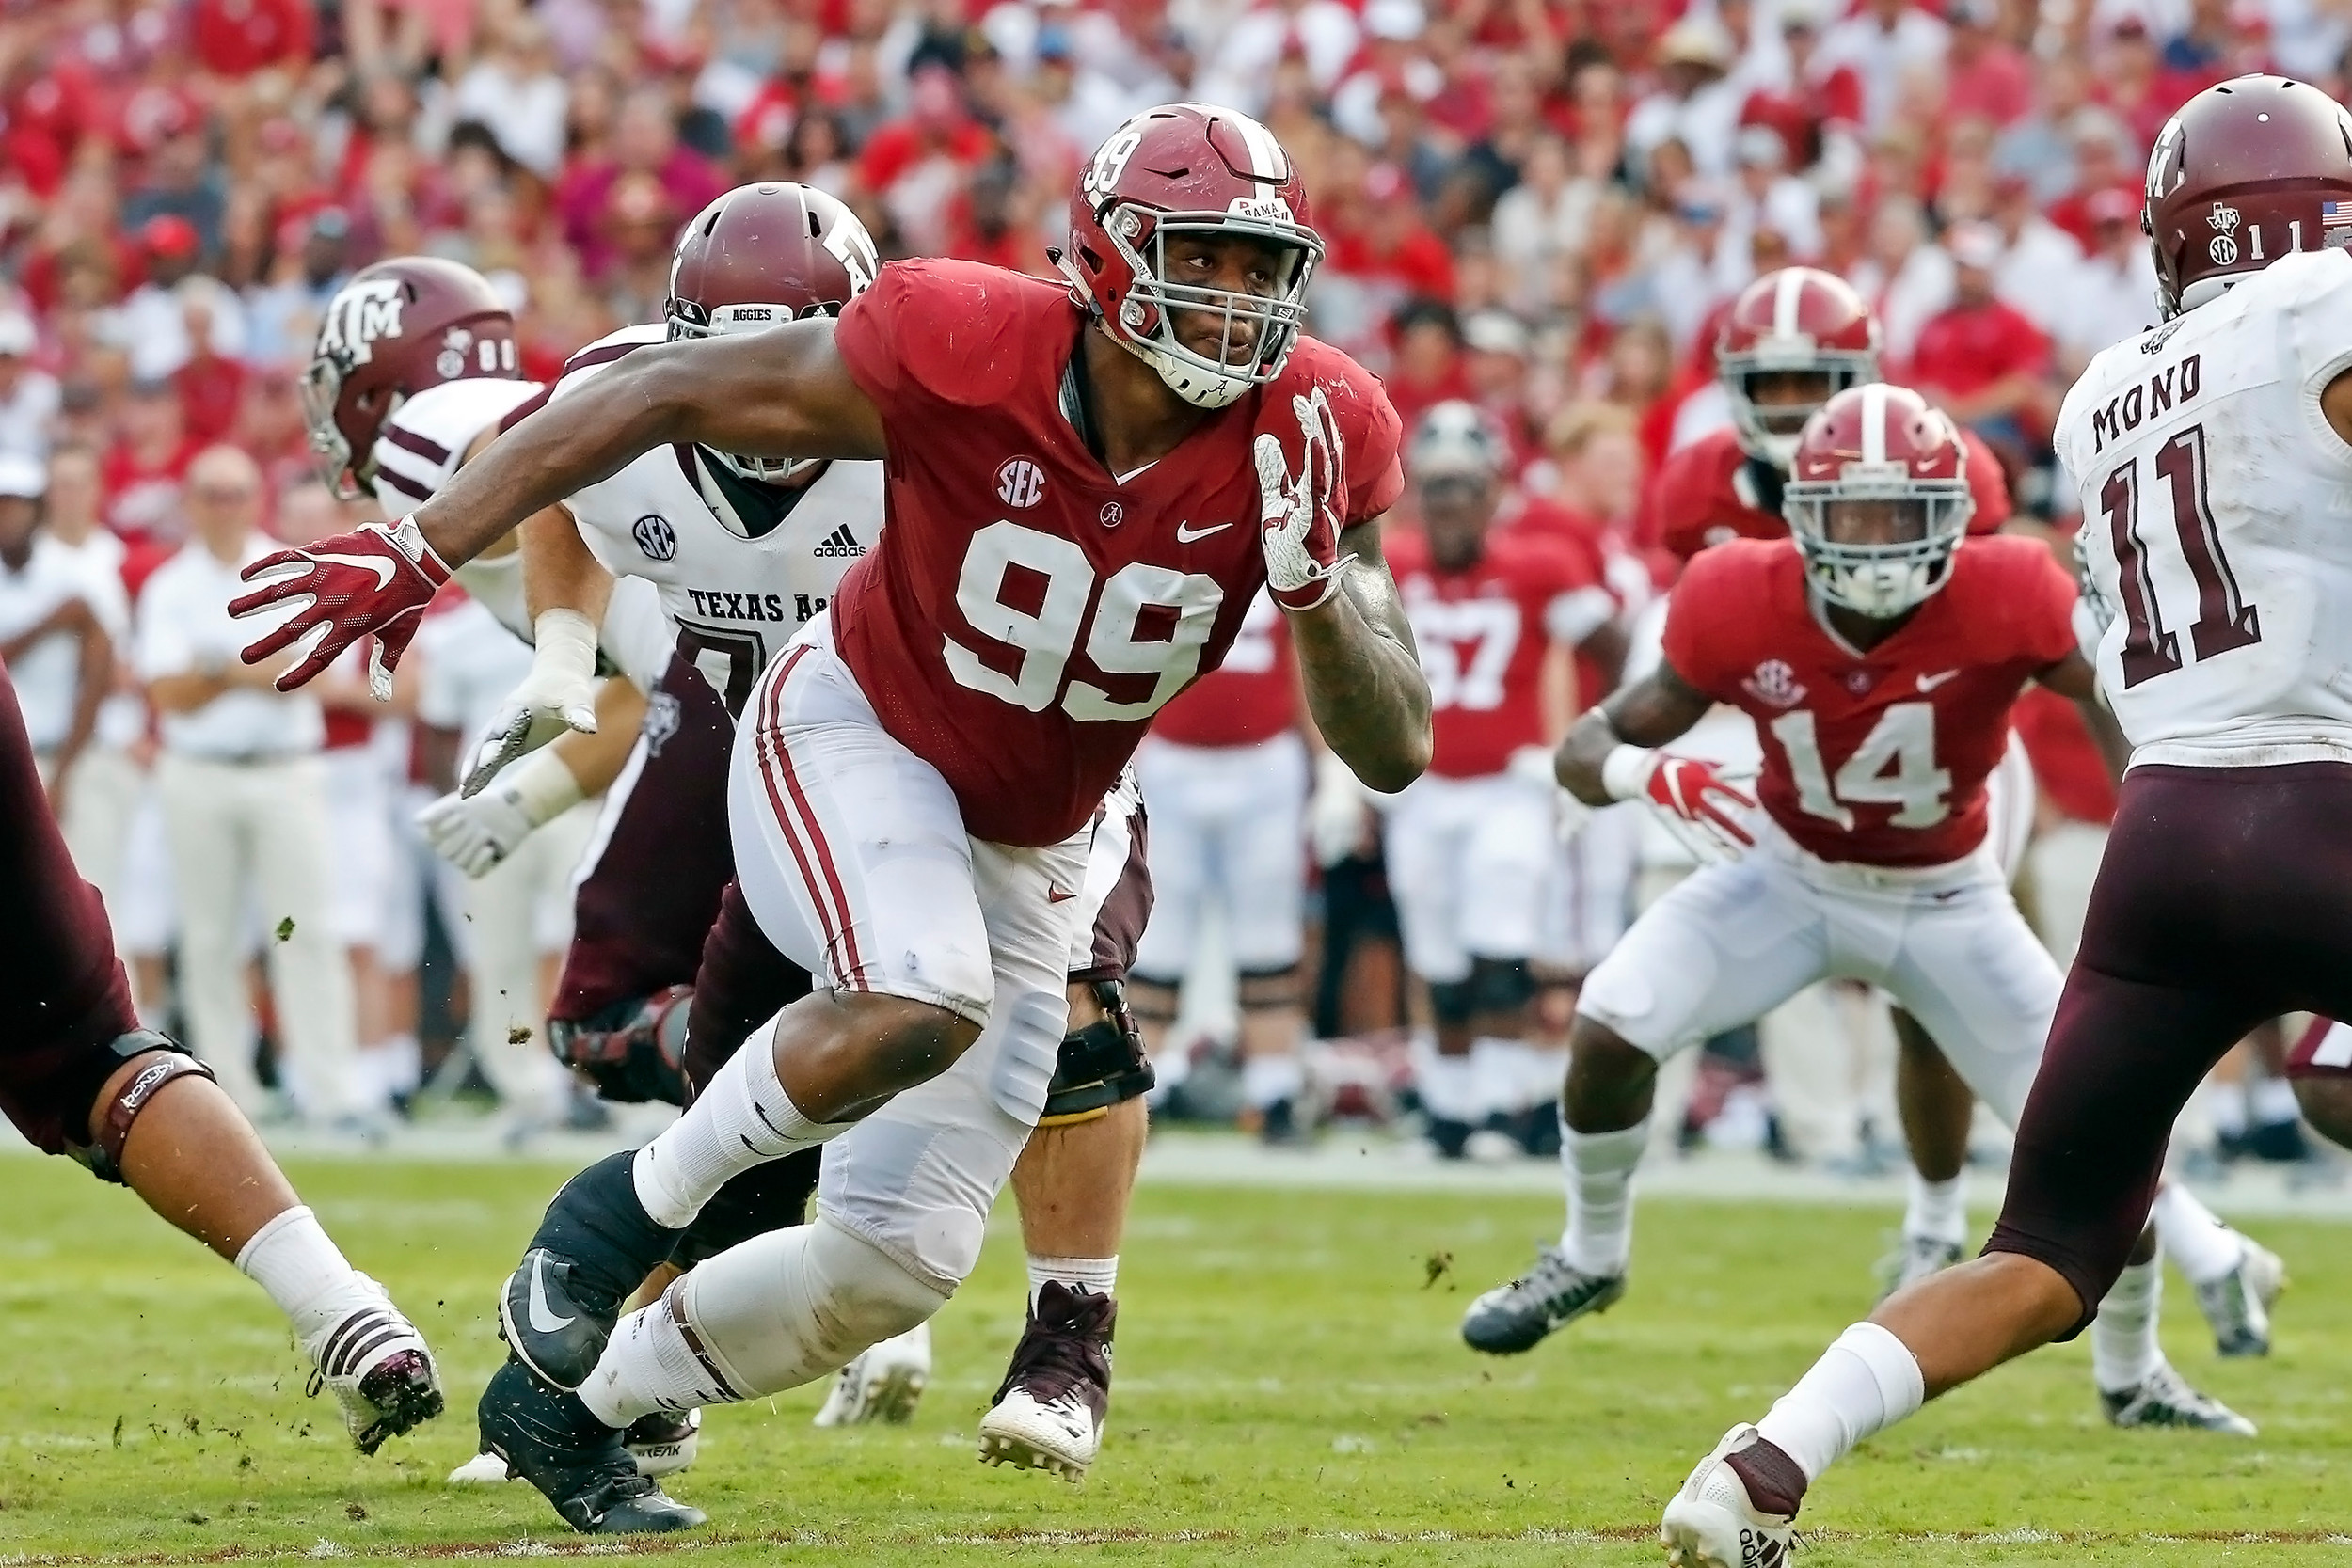 Alabama Crimson Tide defensive lineman Raekwon Davis (99) pressures the quarterback during the game with against the Texas A&M Aggies at Bryant-Denny Stadium.  Jason Clark / Daily Mountain Eagle